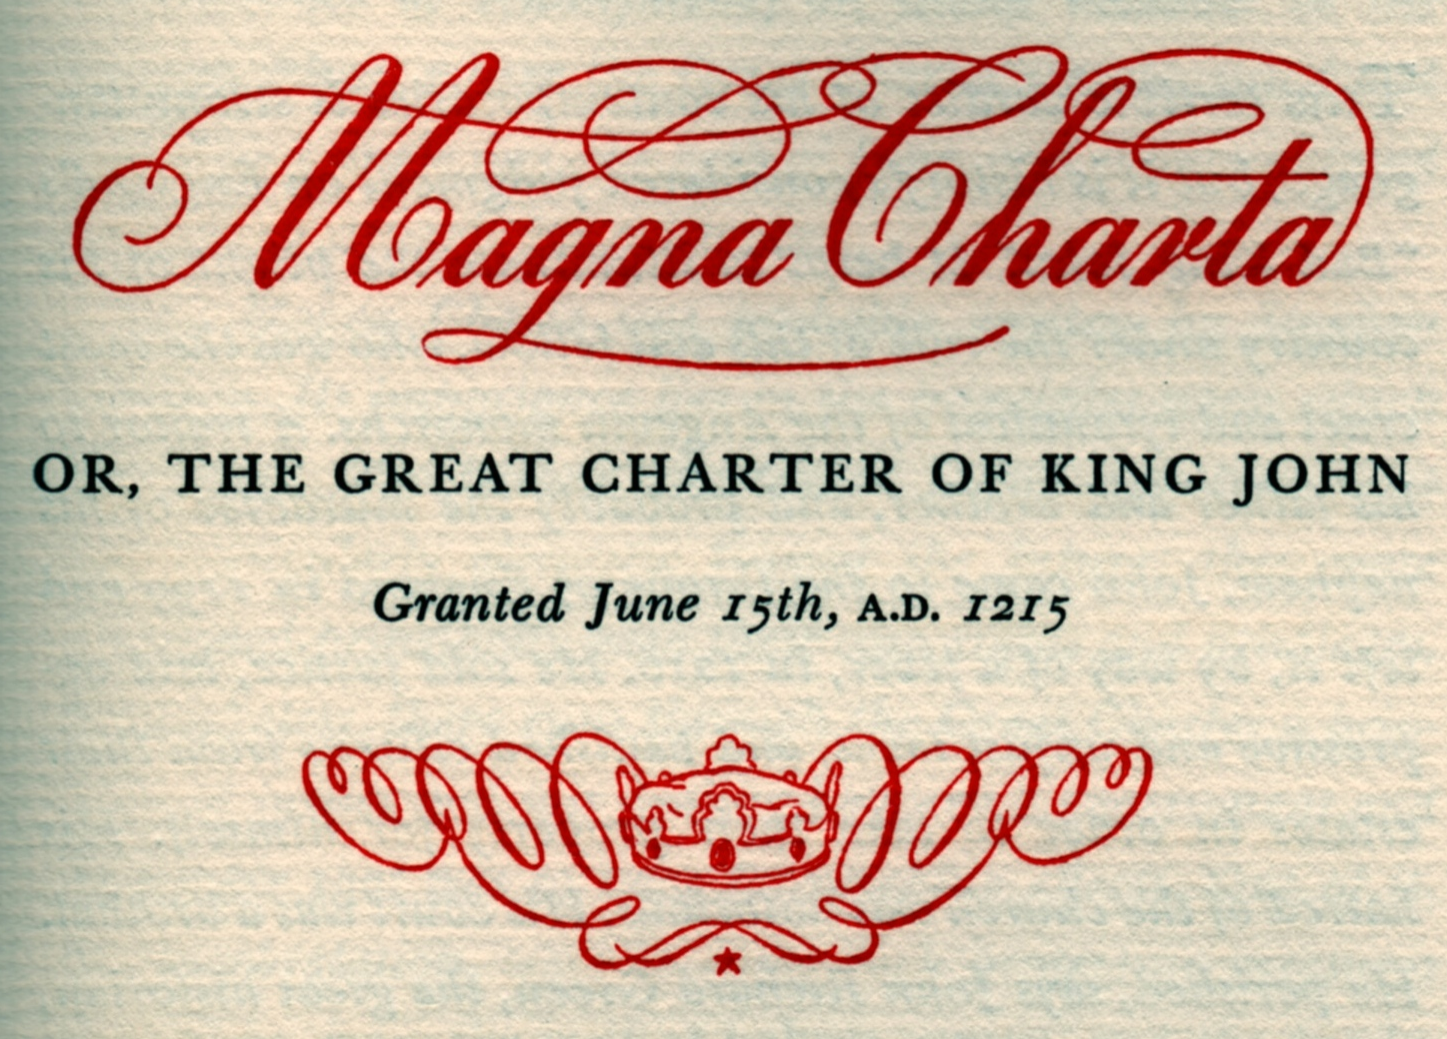 Unlike most uses,  Three Great Documents  uses a variant spelling of the Magna Carta.